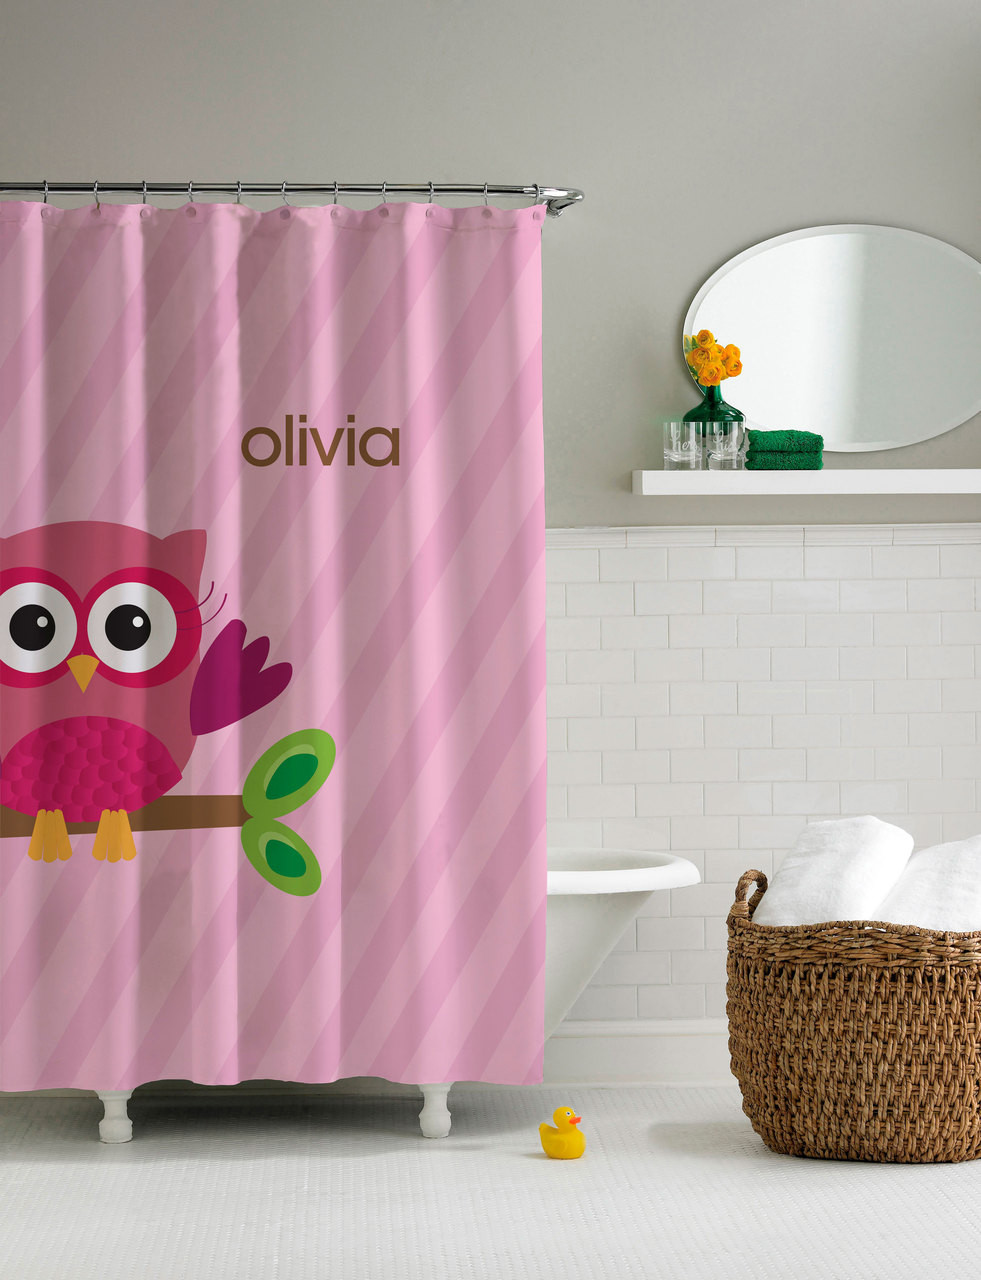 82 Shower Curtain Pink Owl Be Yours Shower Curtain